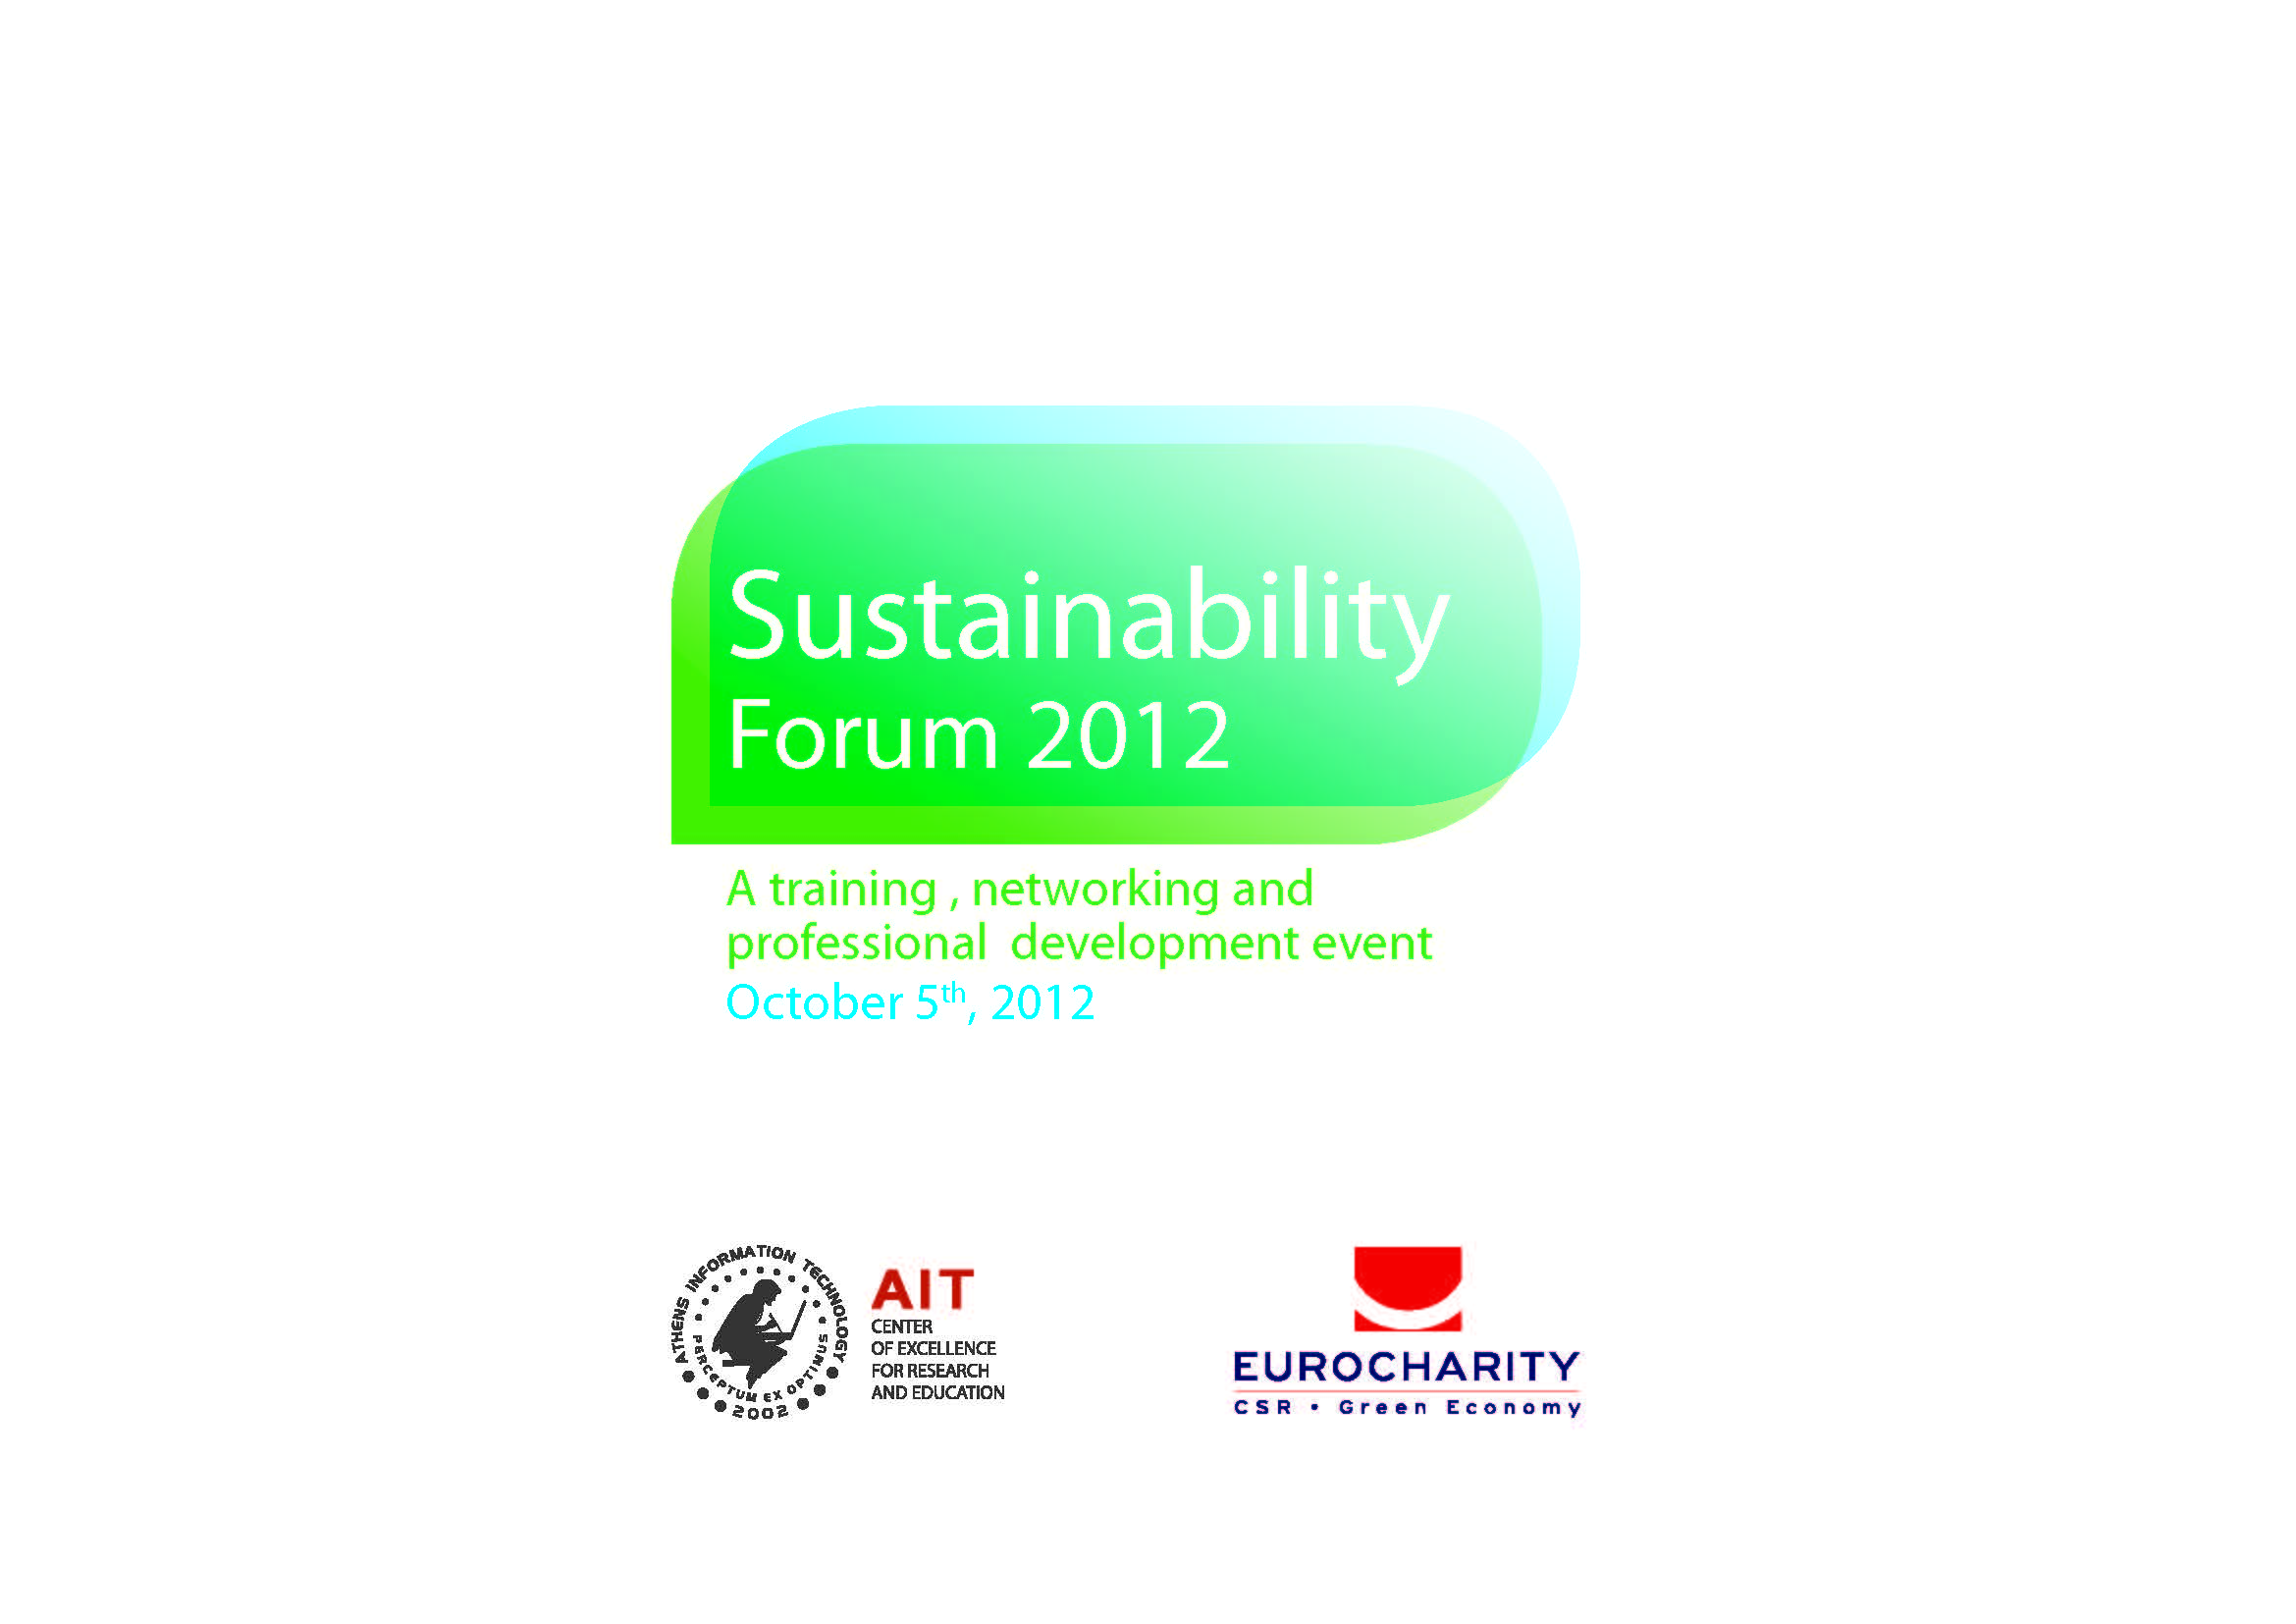 Sustainability Forum 2012